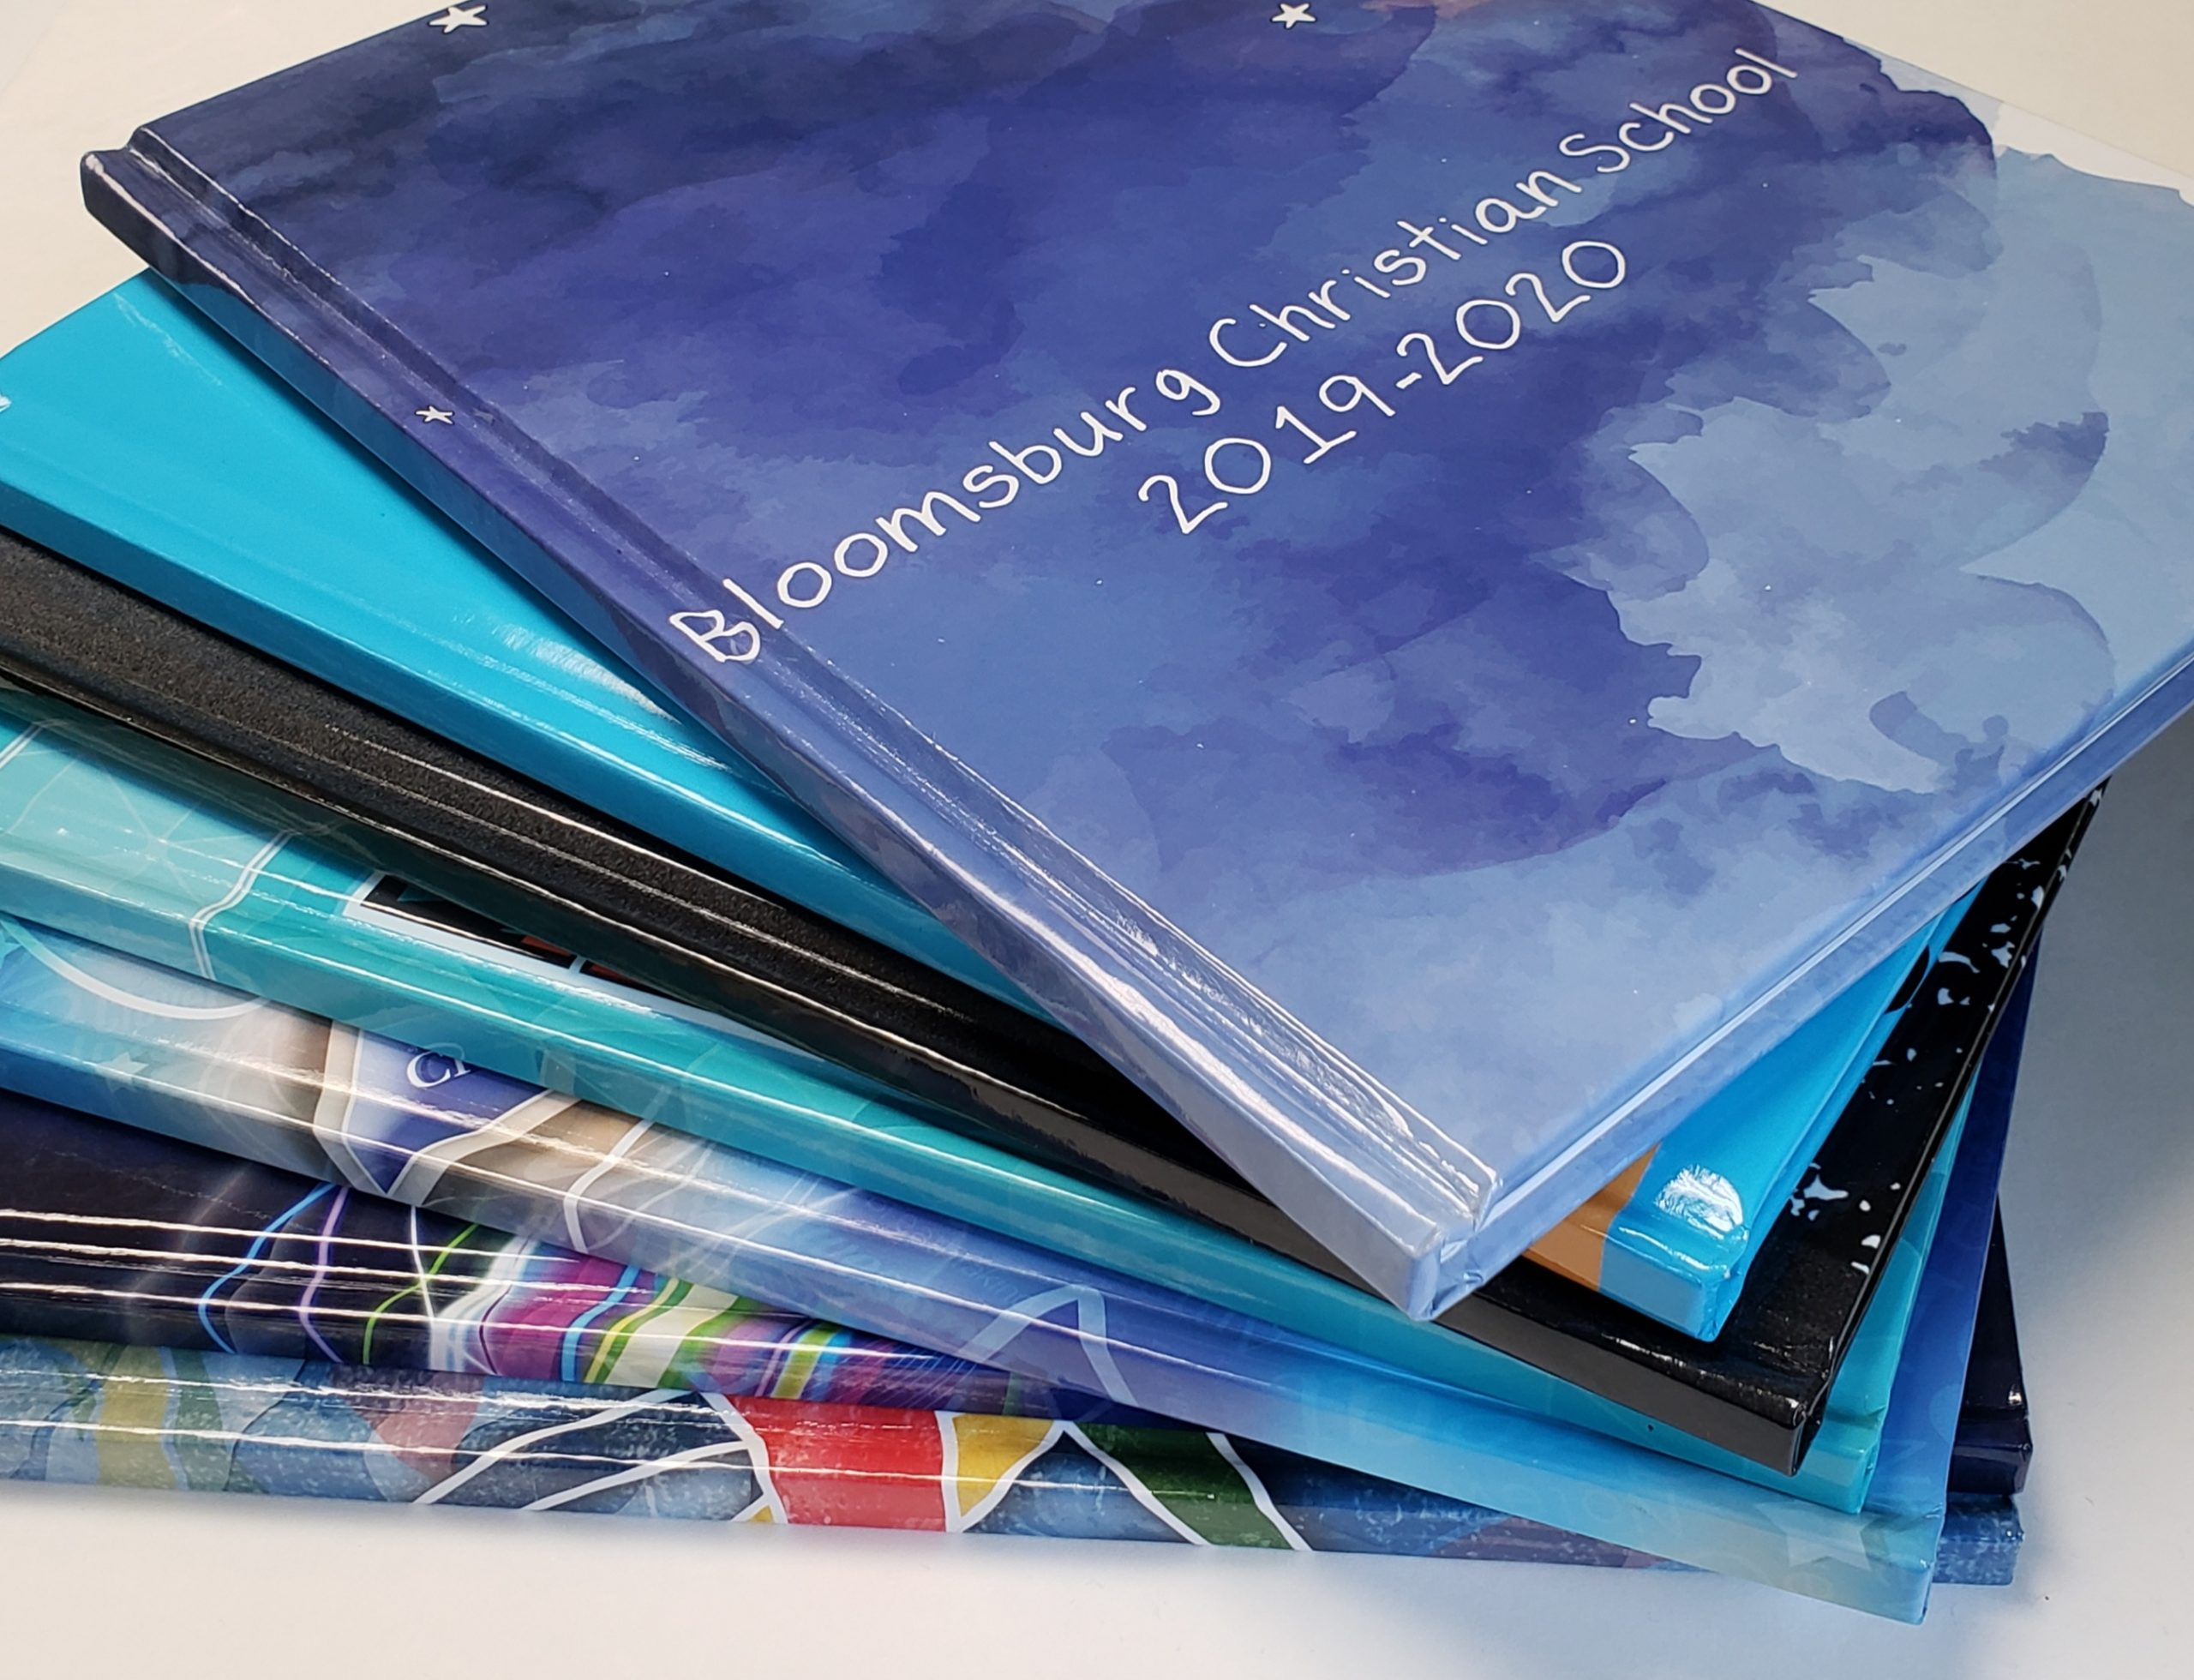 Yearbooks…Get your yearbooks!